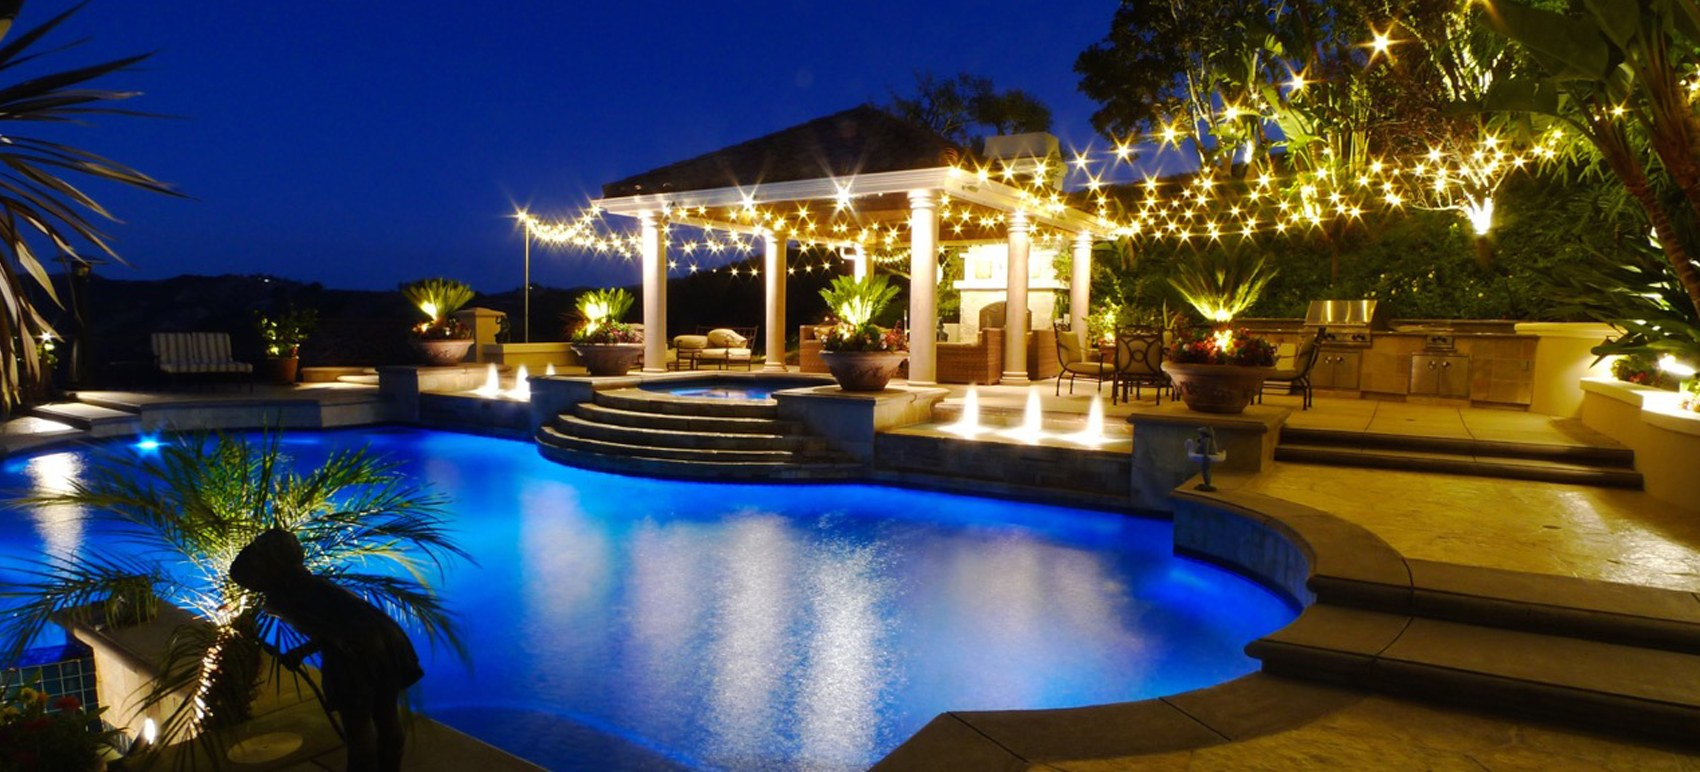 Landscape Lighting Installation - Pool Lighting